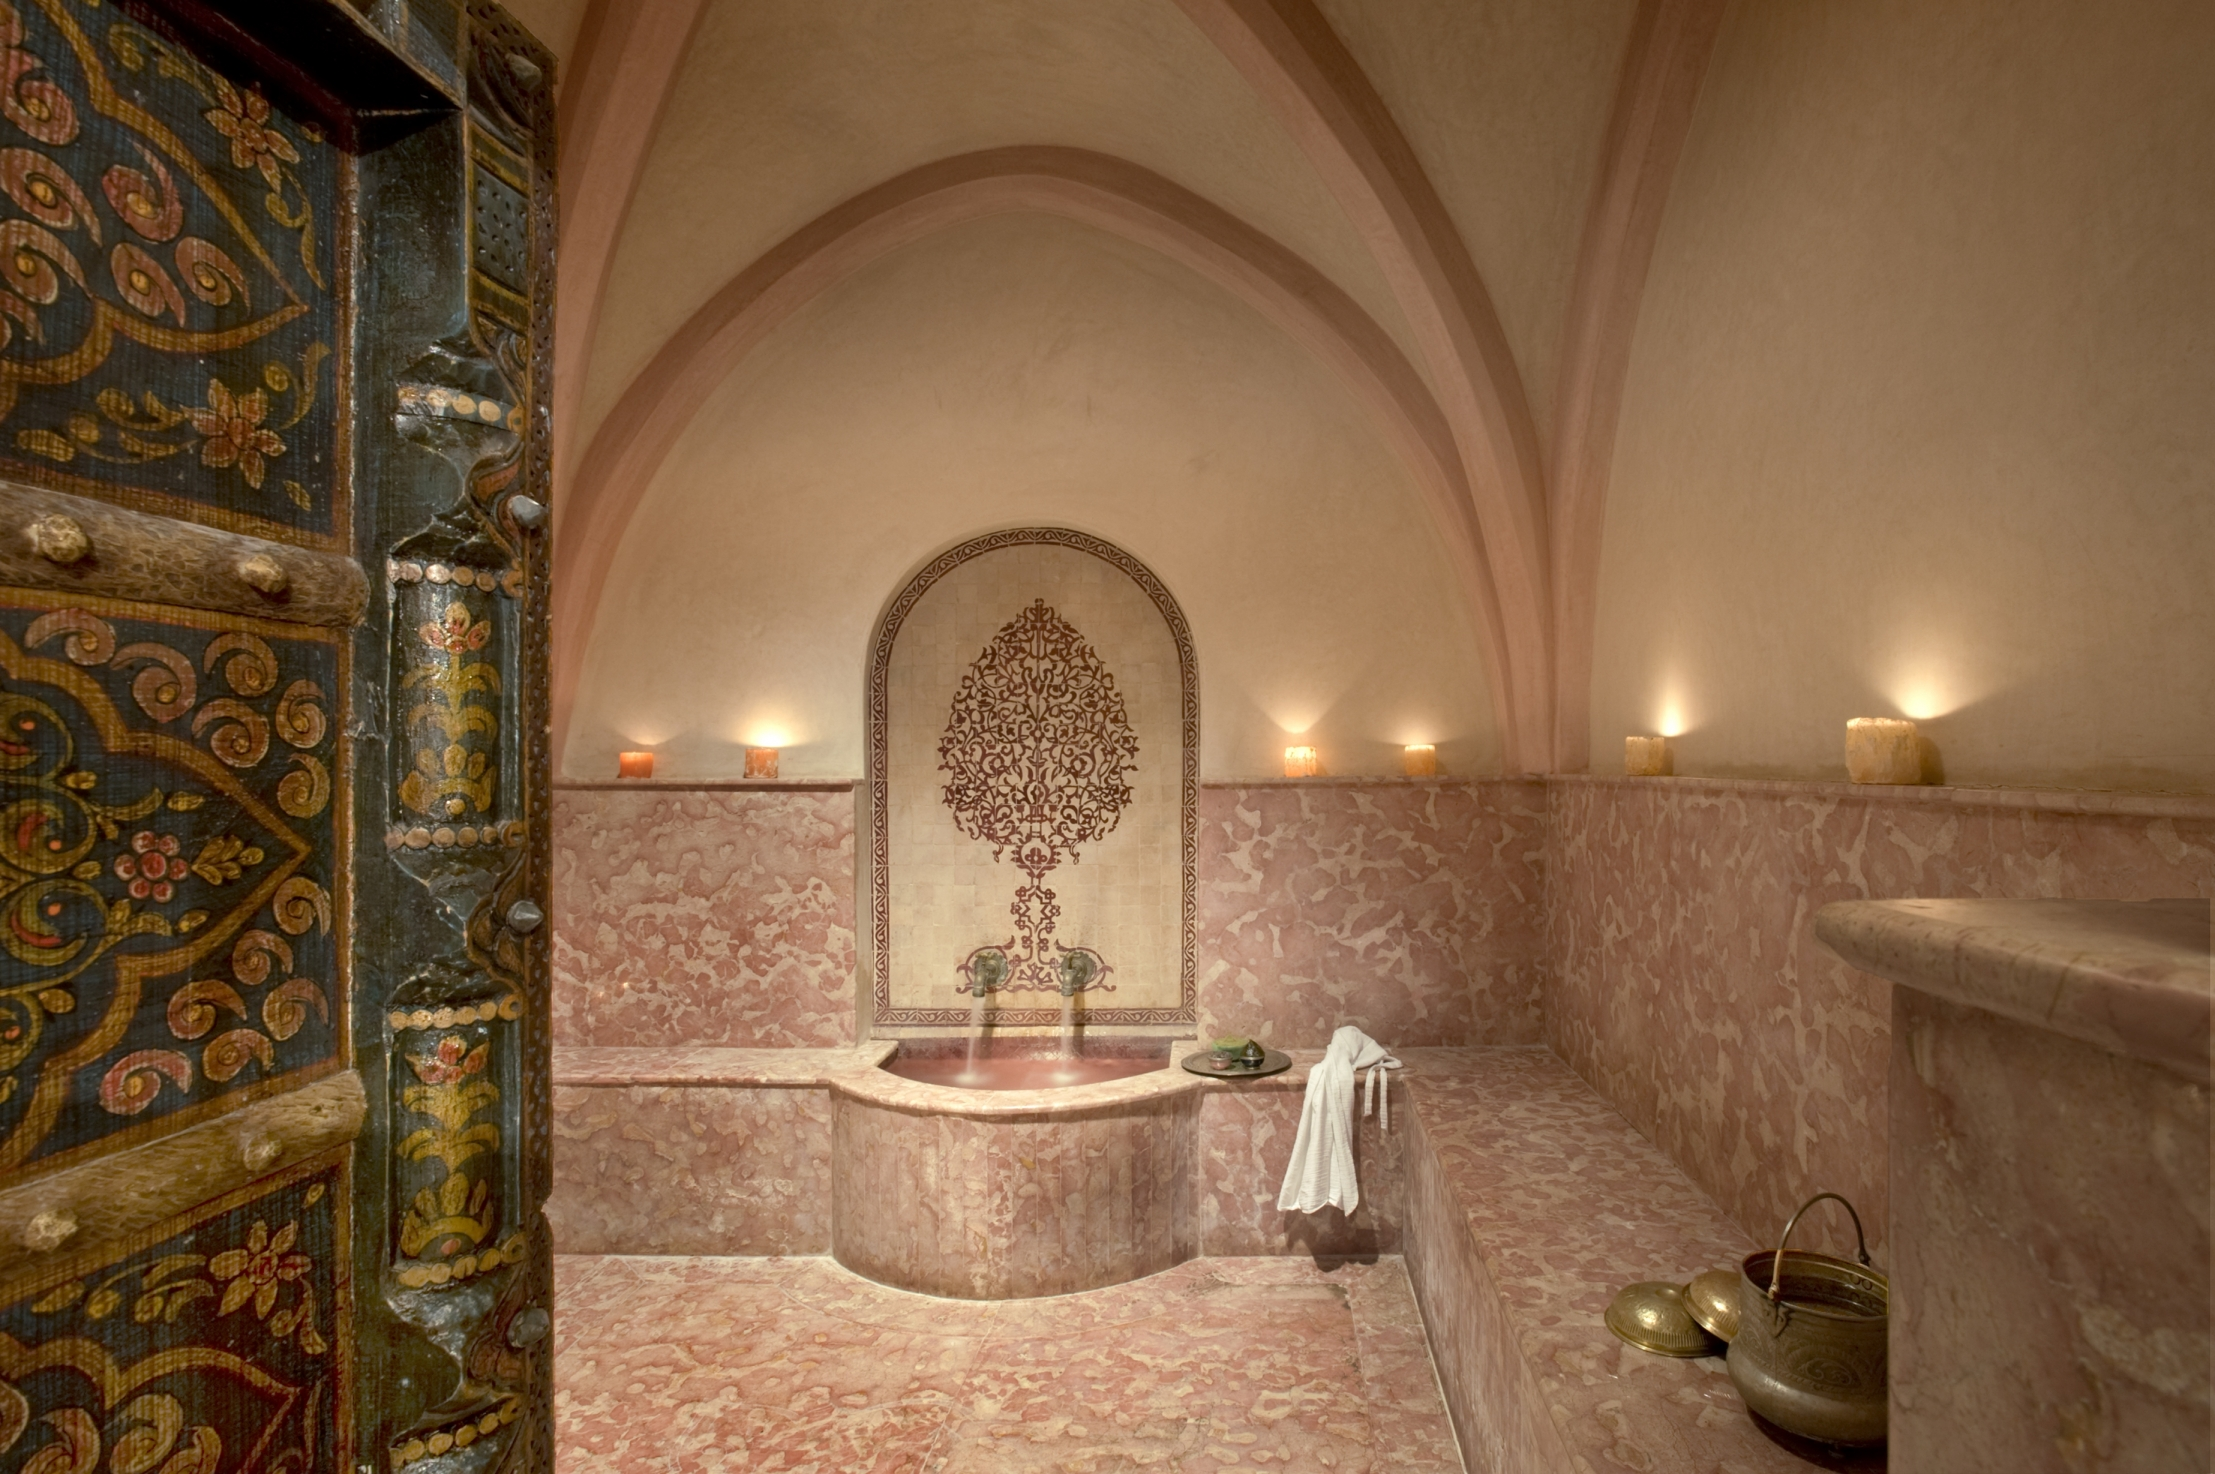 smartvolta_volta-smart-places-la-sultana-marrakech-spa-hammam_m